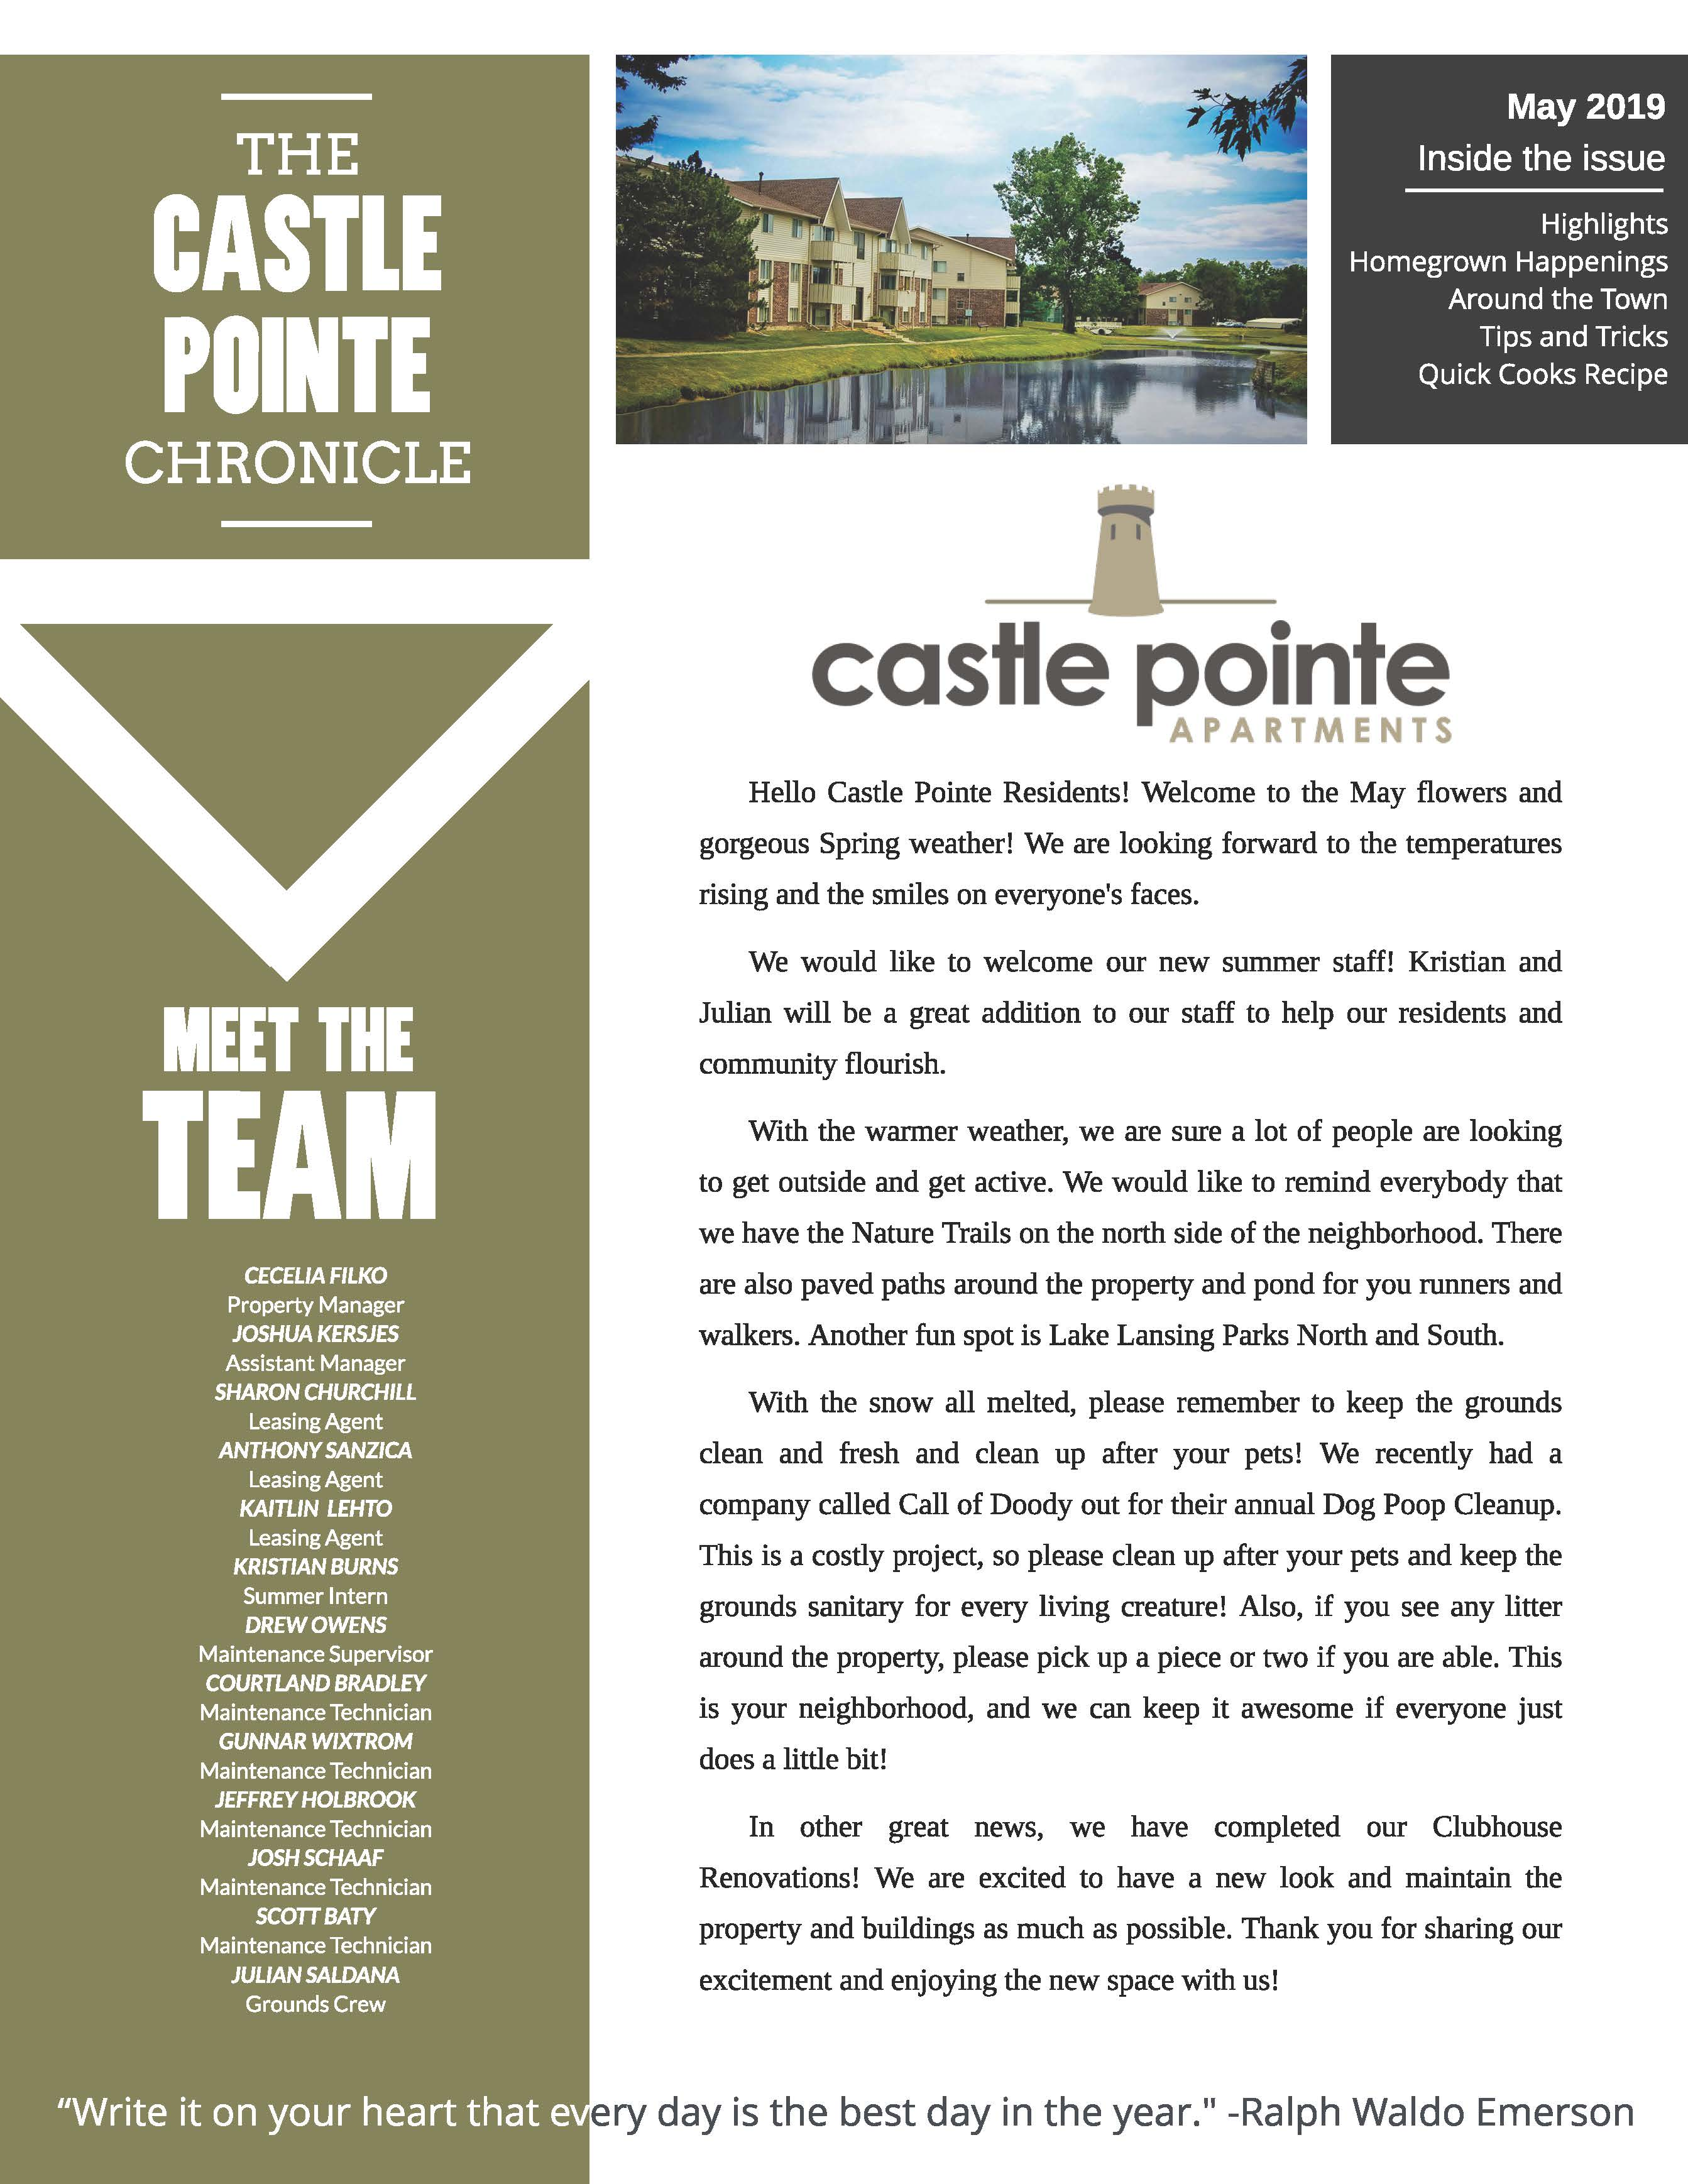 May 2019 Newsletter The Castle Pointe Chronicle